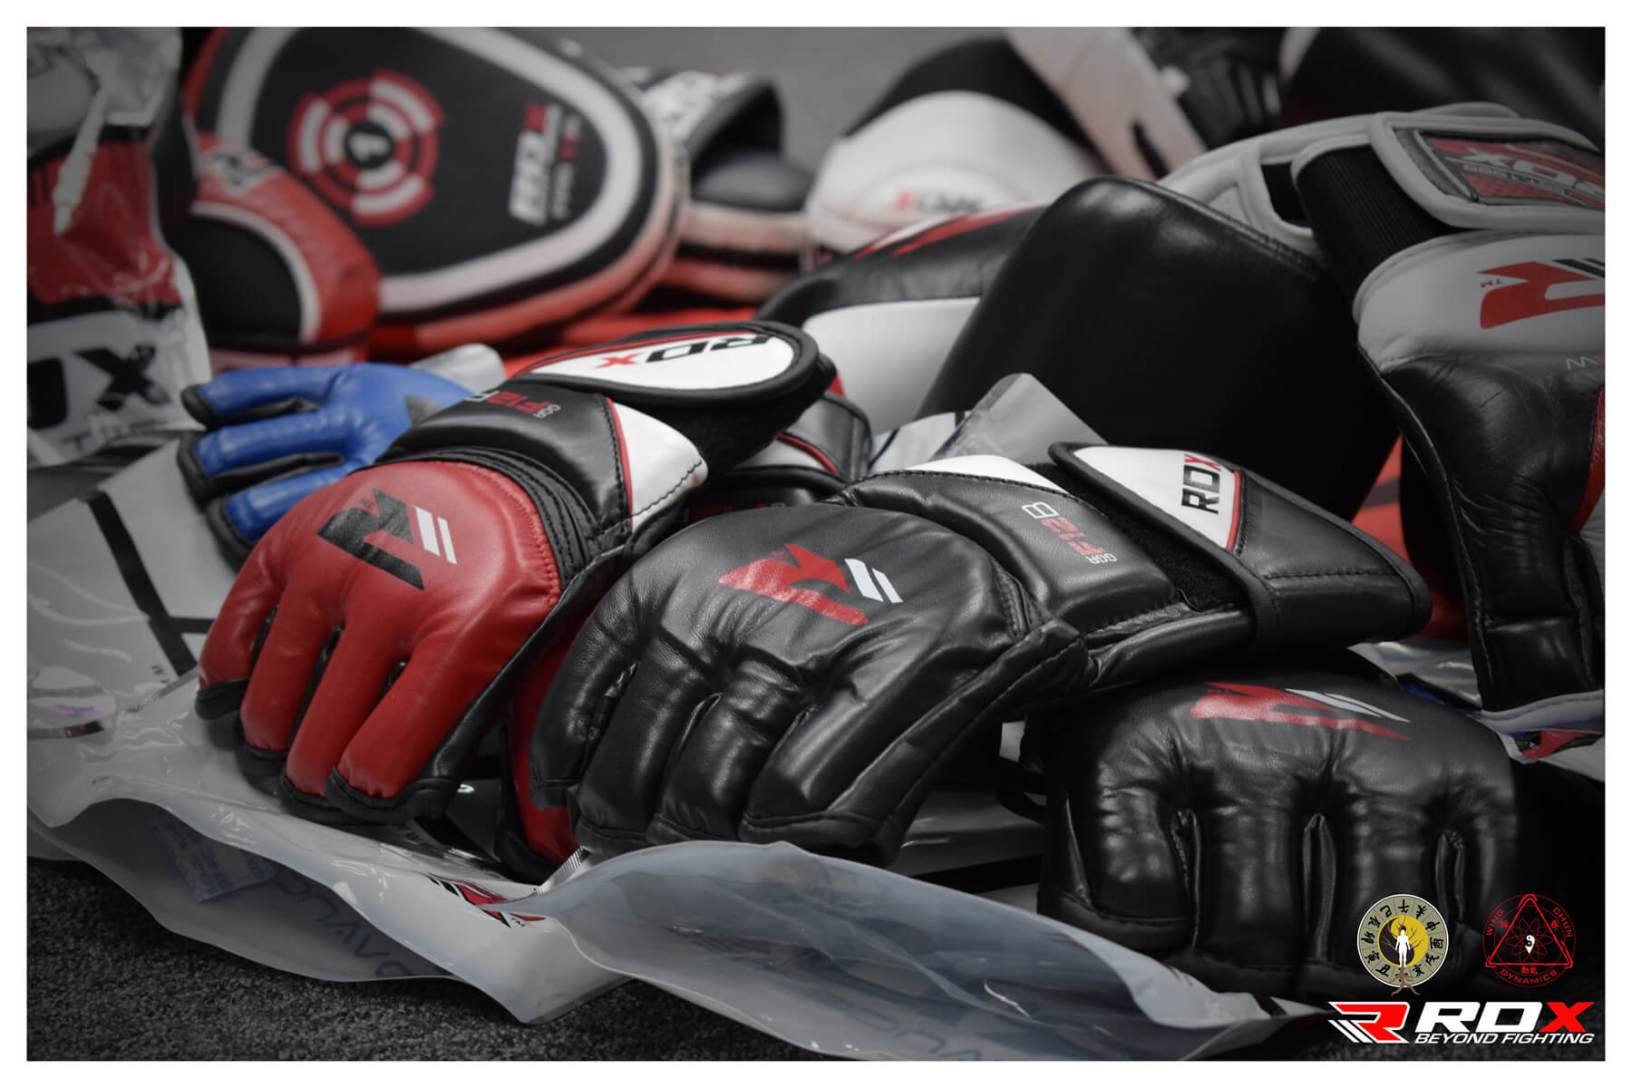 RDX sports partners with wing chun dynamics martial arts